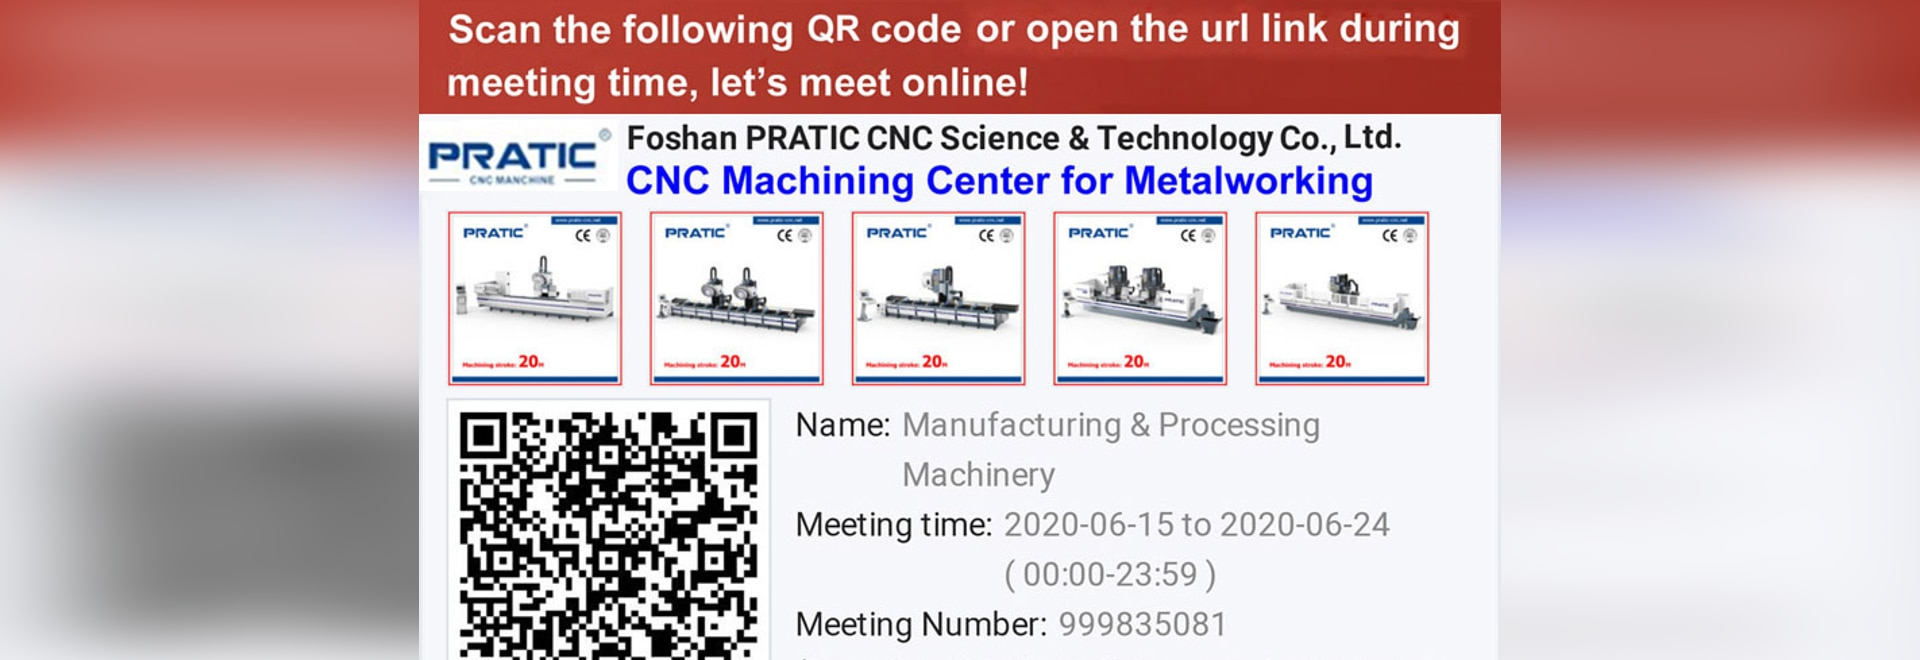 PRATIC Will Take Part in Online Canton Fair through Made-in-China from June 15 to June 24